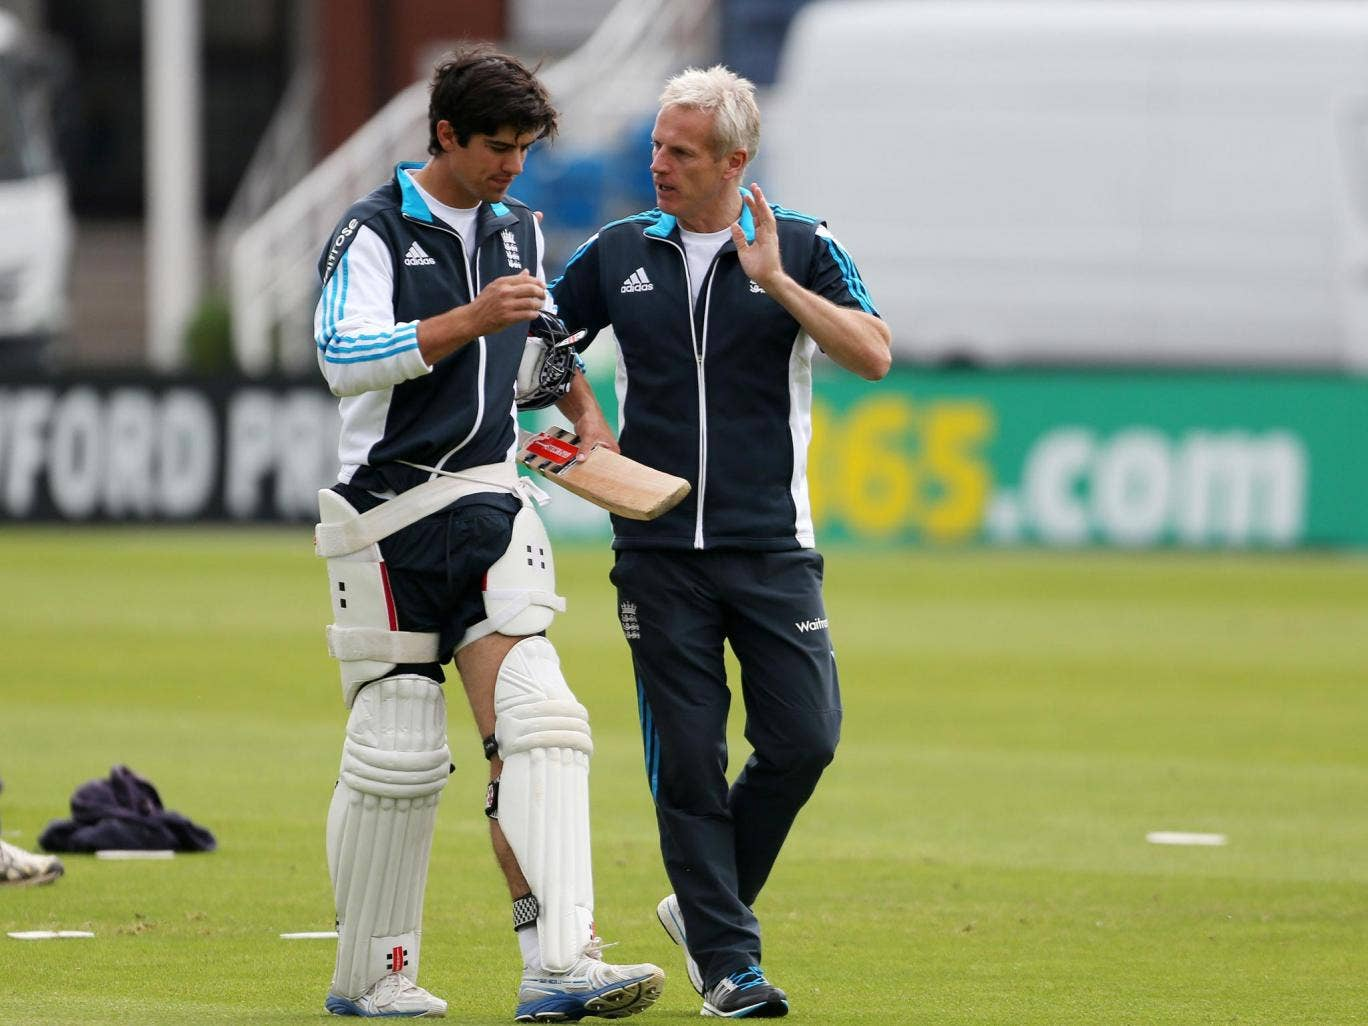 England captain Alastair Cook (left), who has gone 22 innings without a Test century, speaks with the coach, Peter Moores, at Headingley yesterday